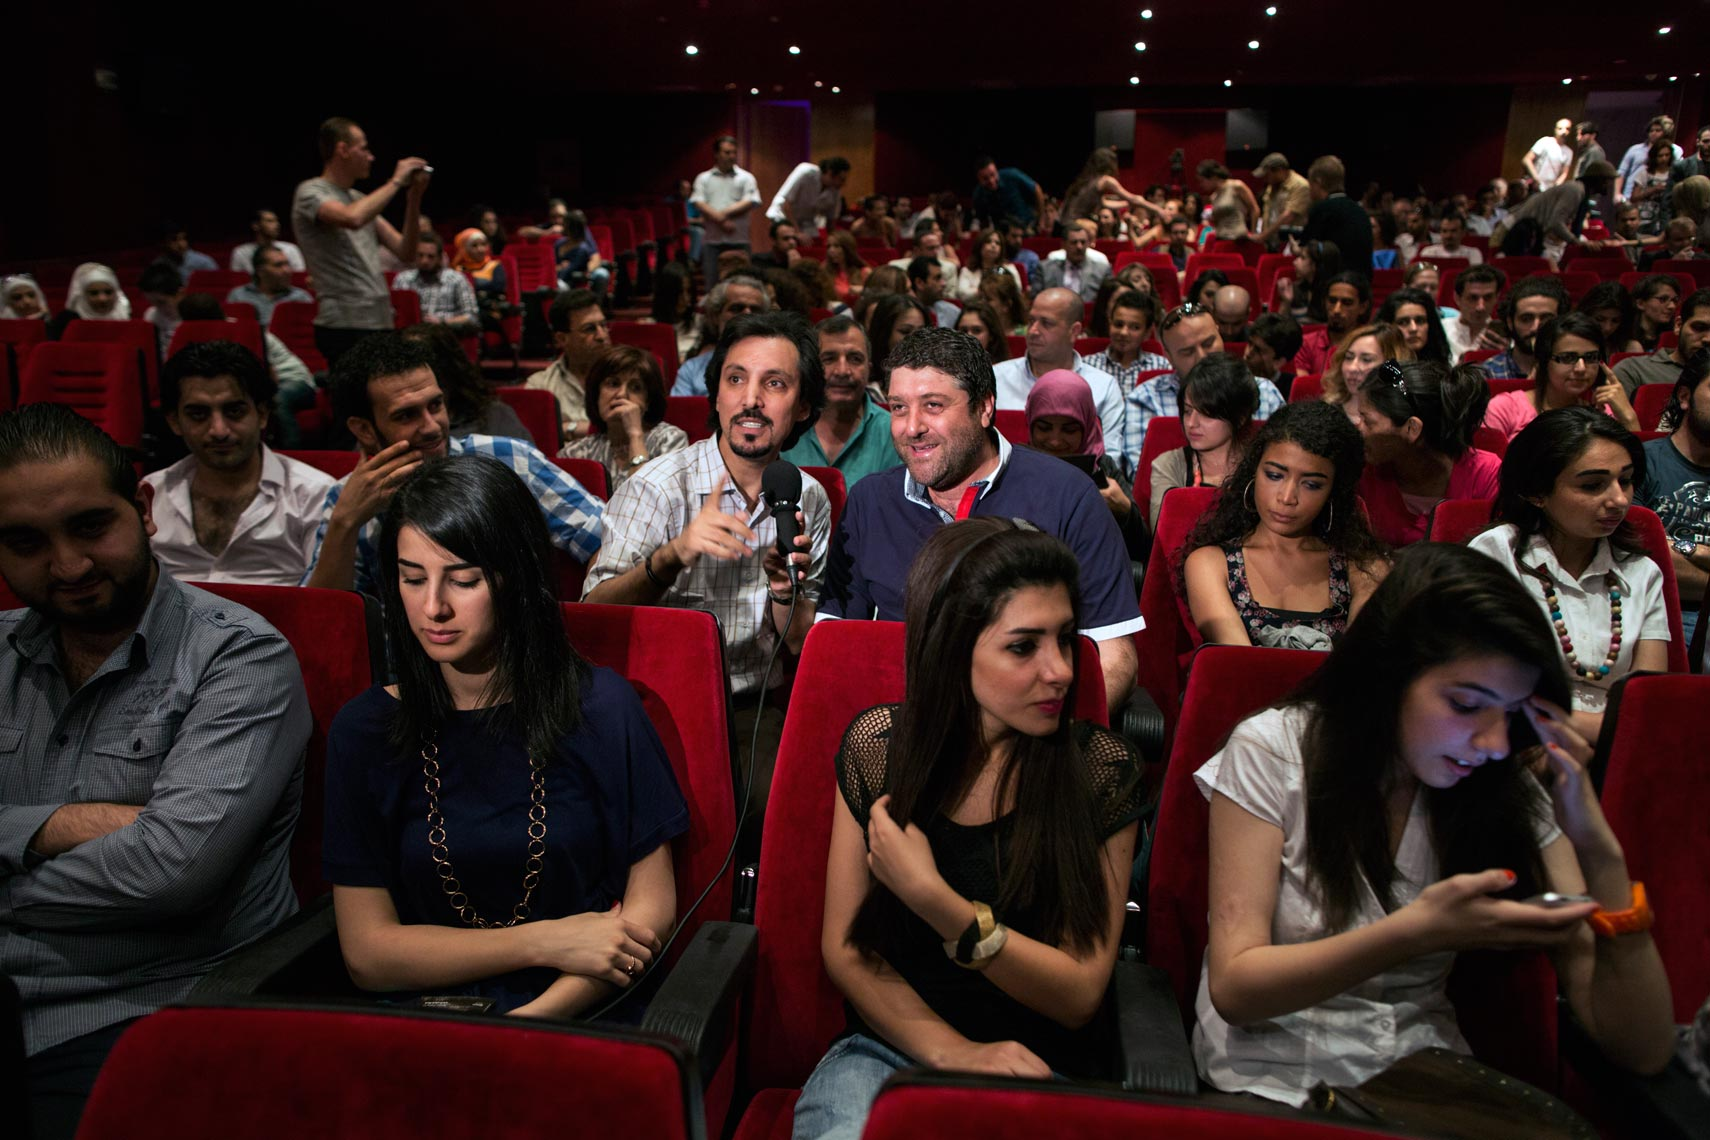 Damascus Syria cinema